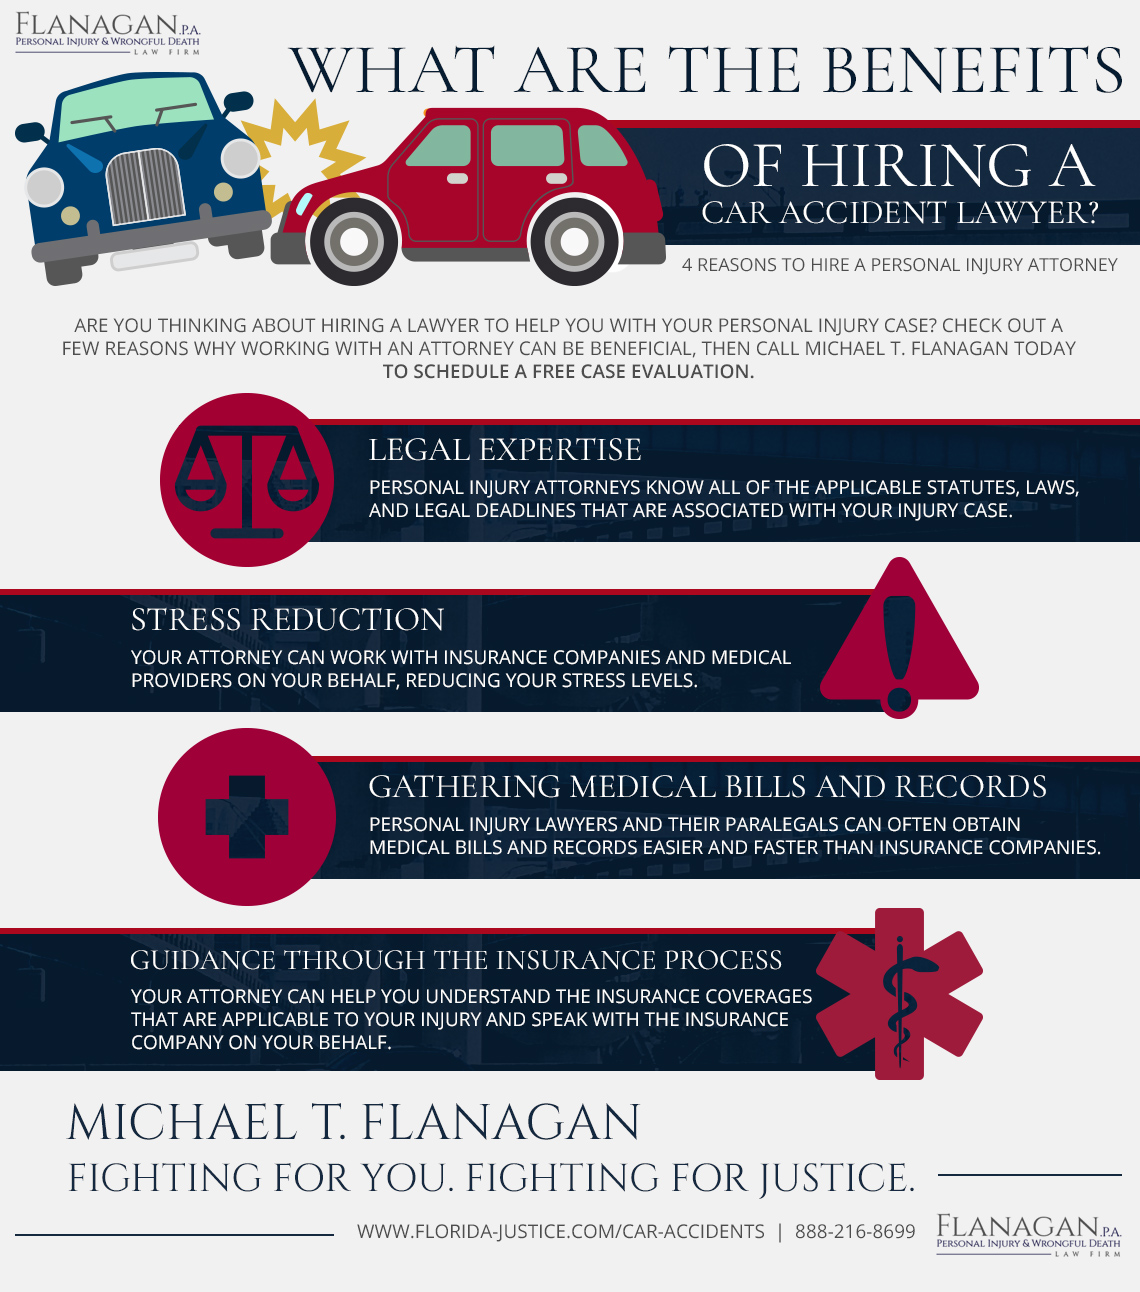 Car Accident Lawyer Miami: Benefits of Hiring a Car Accident